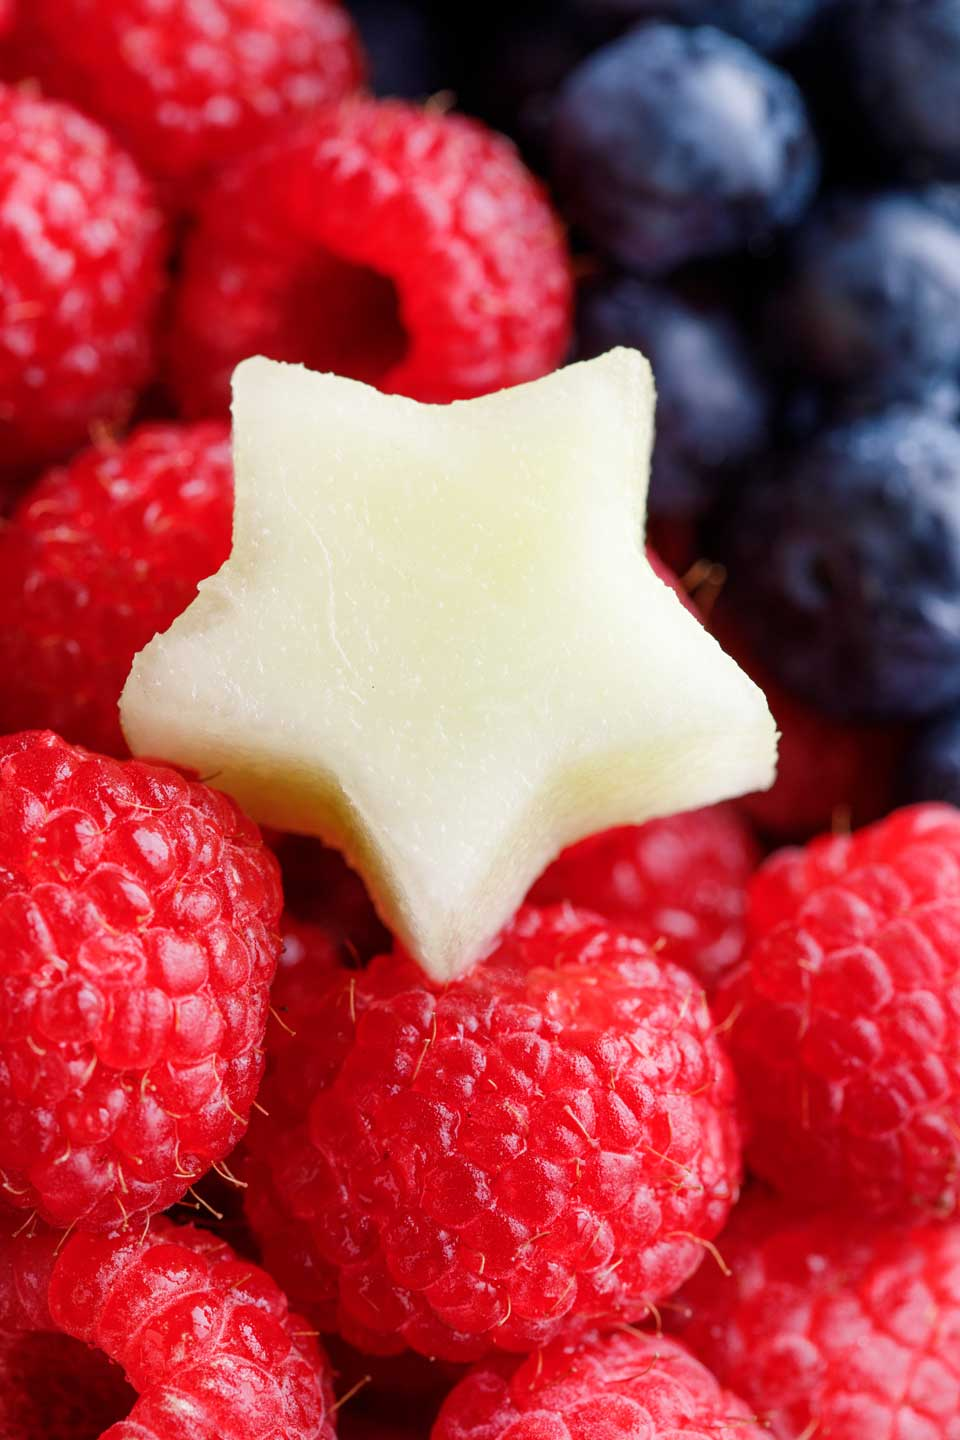 closeup of a little star cut from a honeydew melon, resting on cascades of raspberries and blueberries on a fruit tray